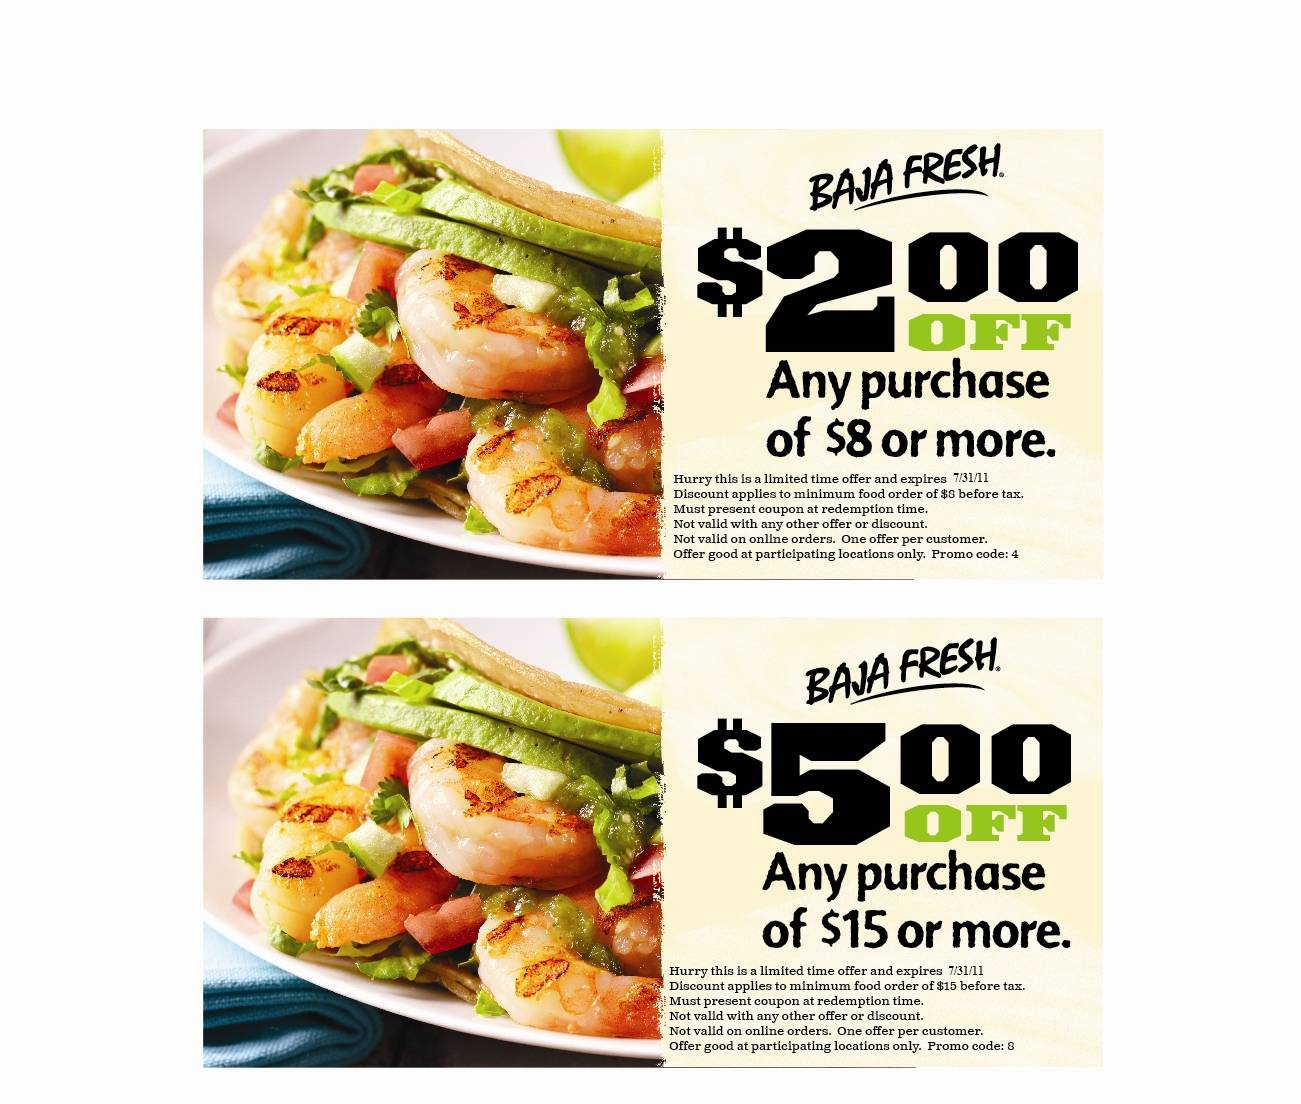 ShopRite Coupons, ShopRite Deals & ShopRite Preview Ad - Learn how to save money at ShopRite using coupons & printable coupons - View ShopRite Preview Ad -.